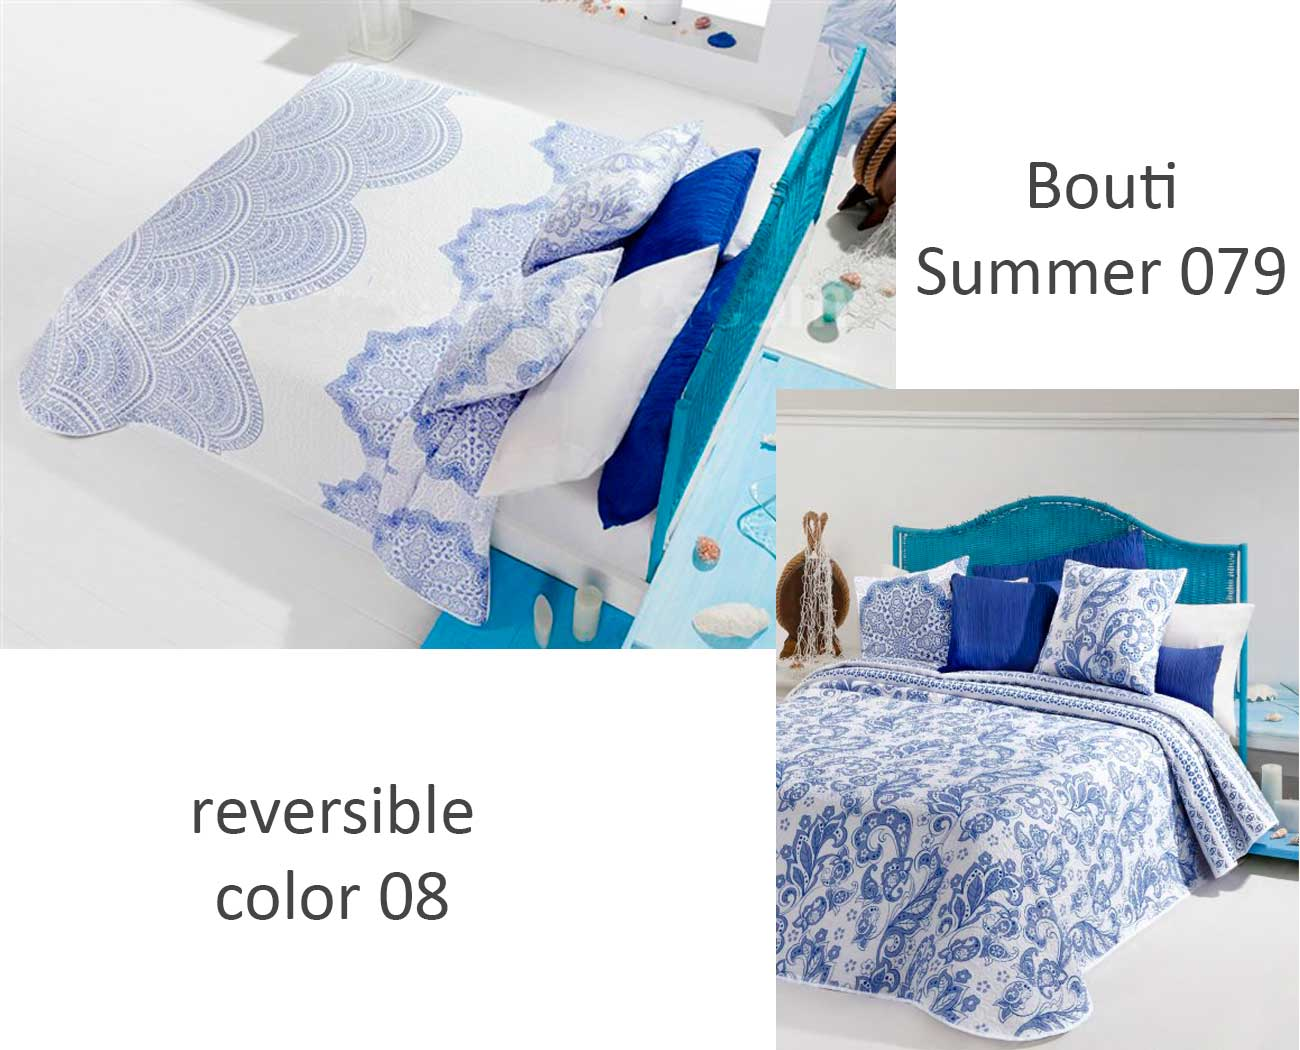 COLCHA BOUTI SUMMER 079 color 08 90 cms